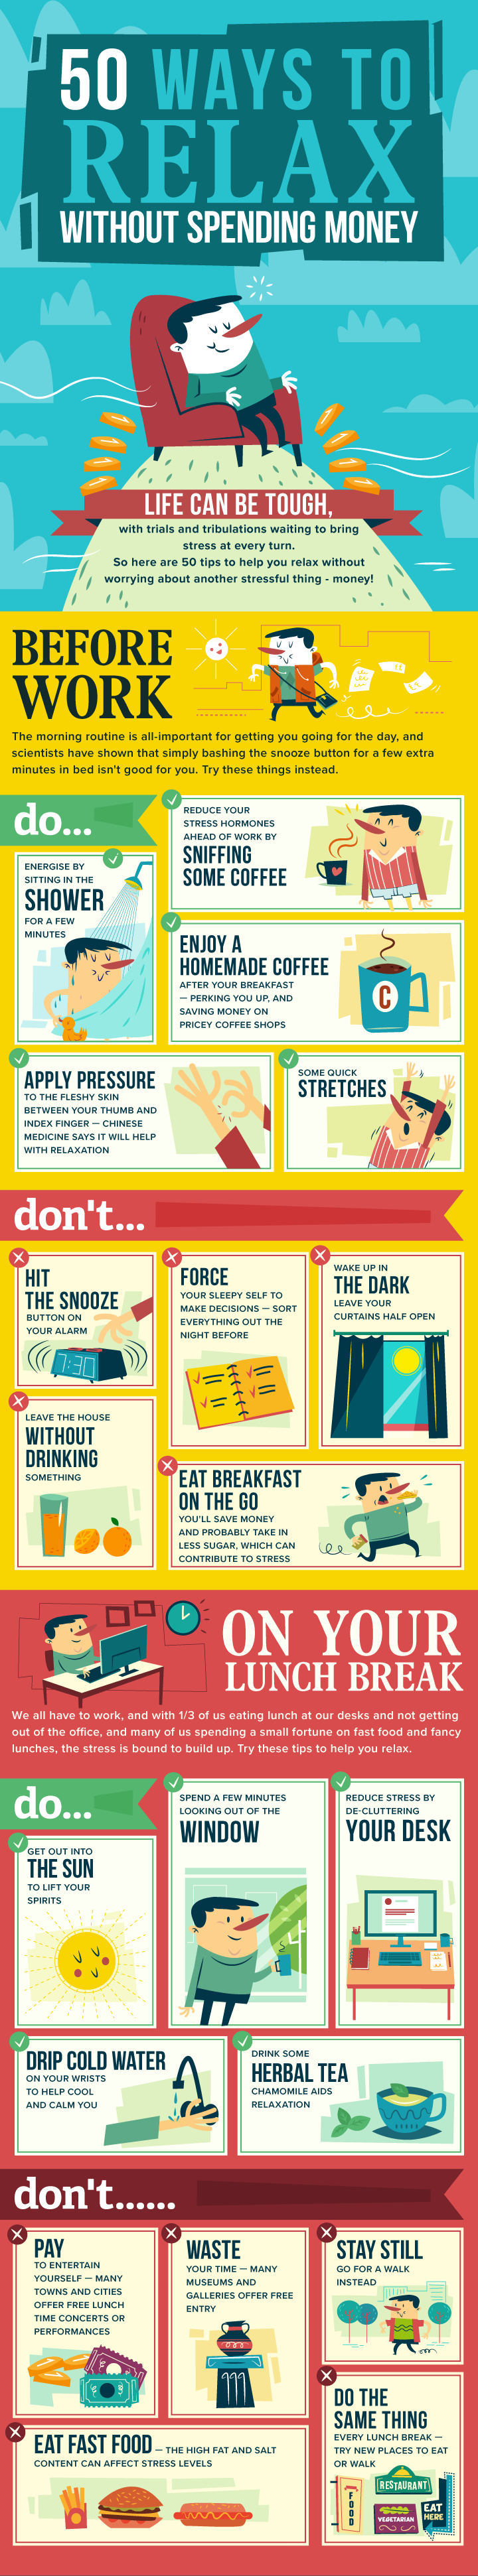 50 ways to relax without spending infographic